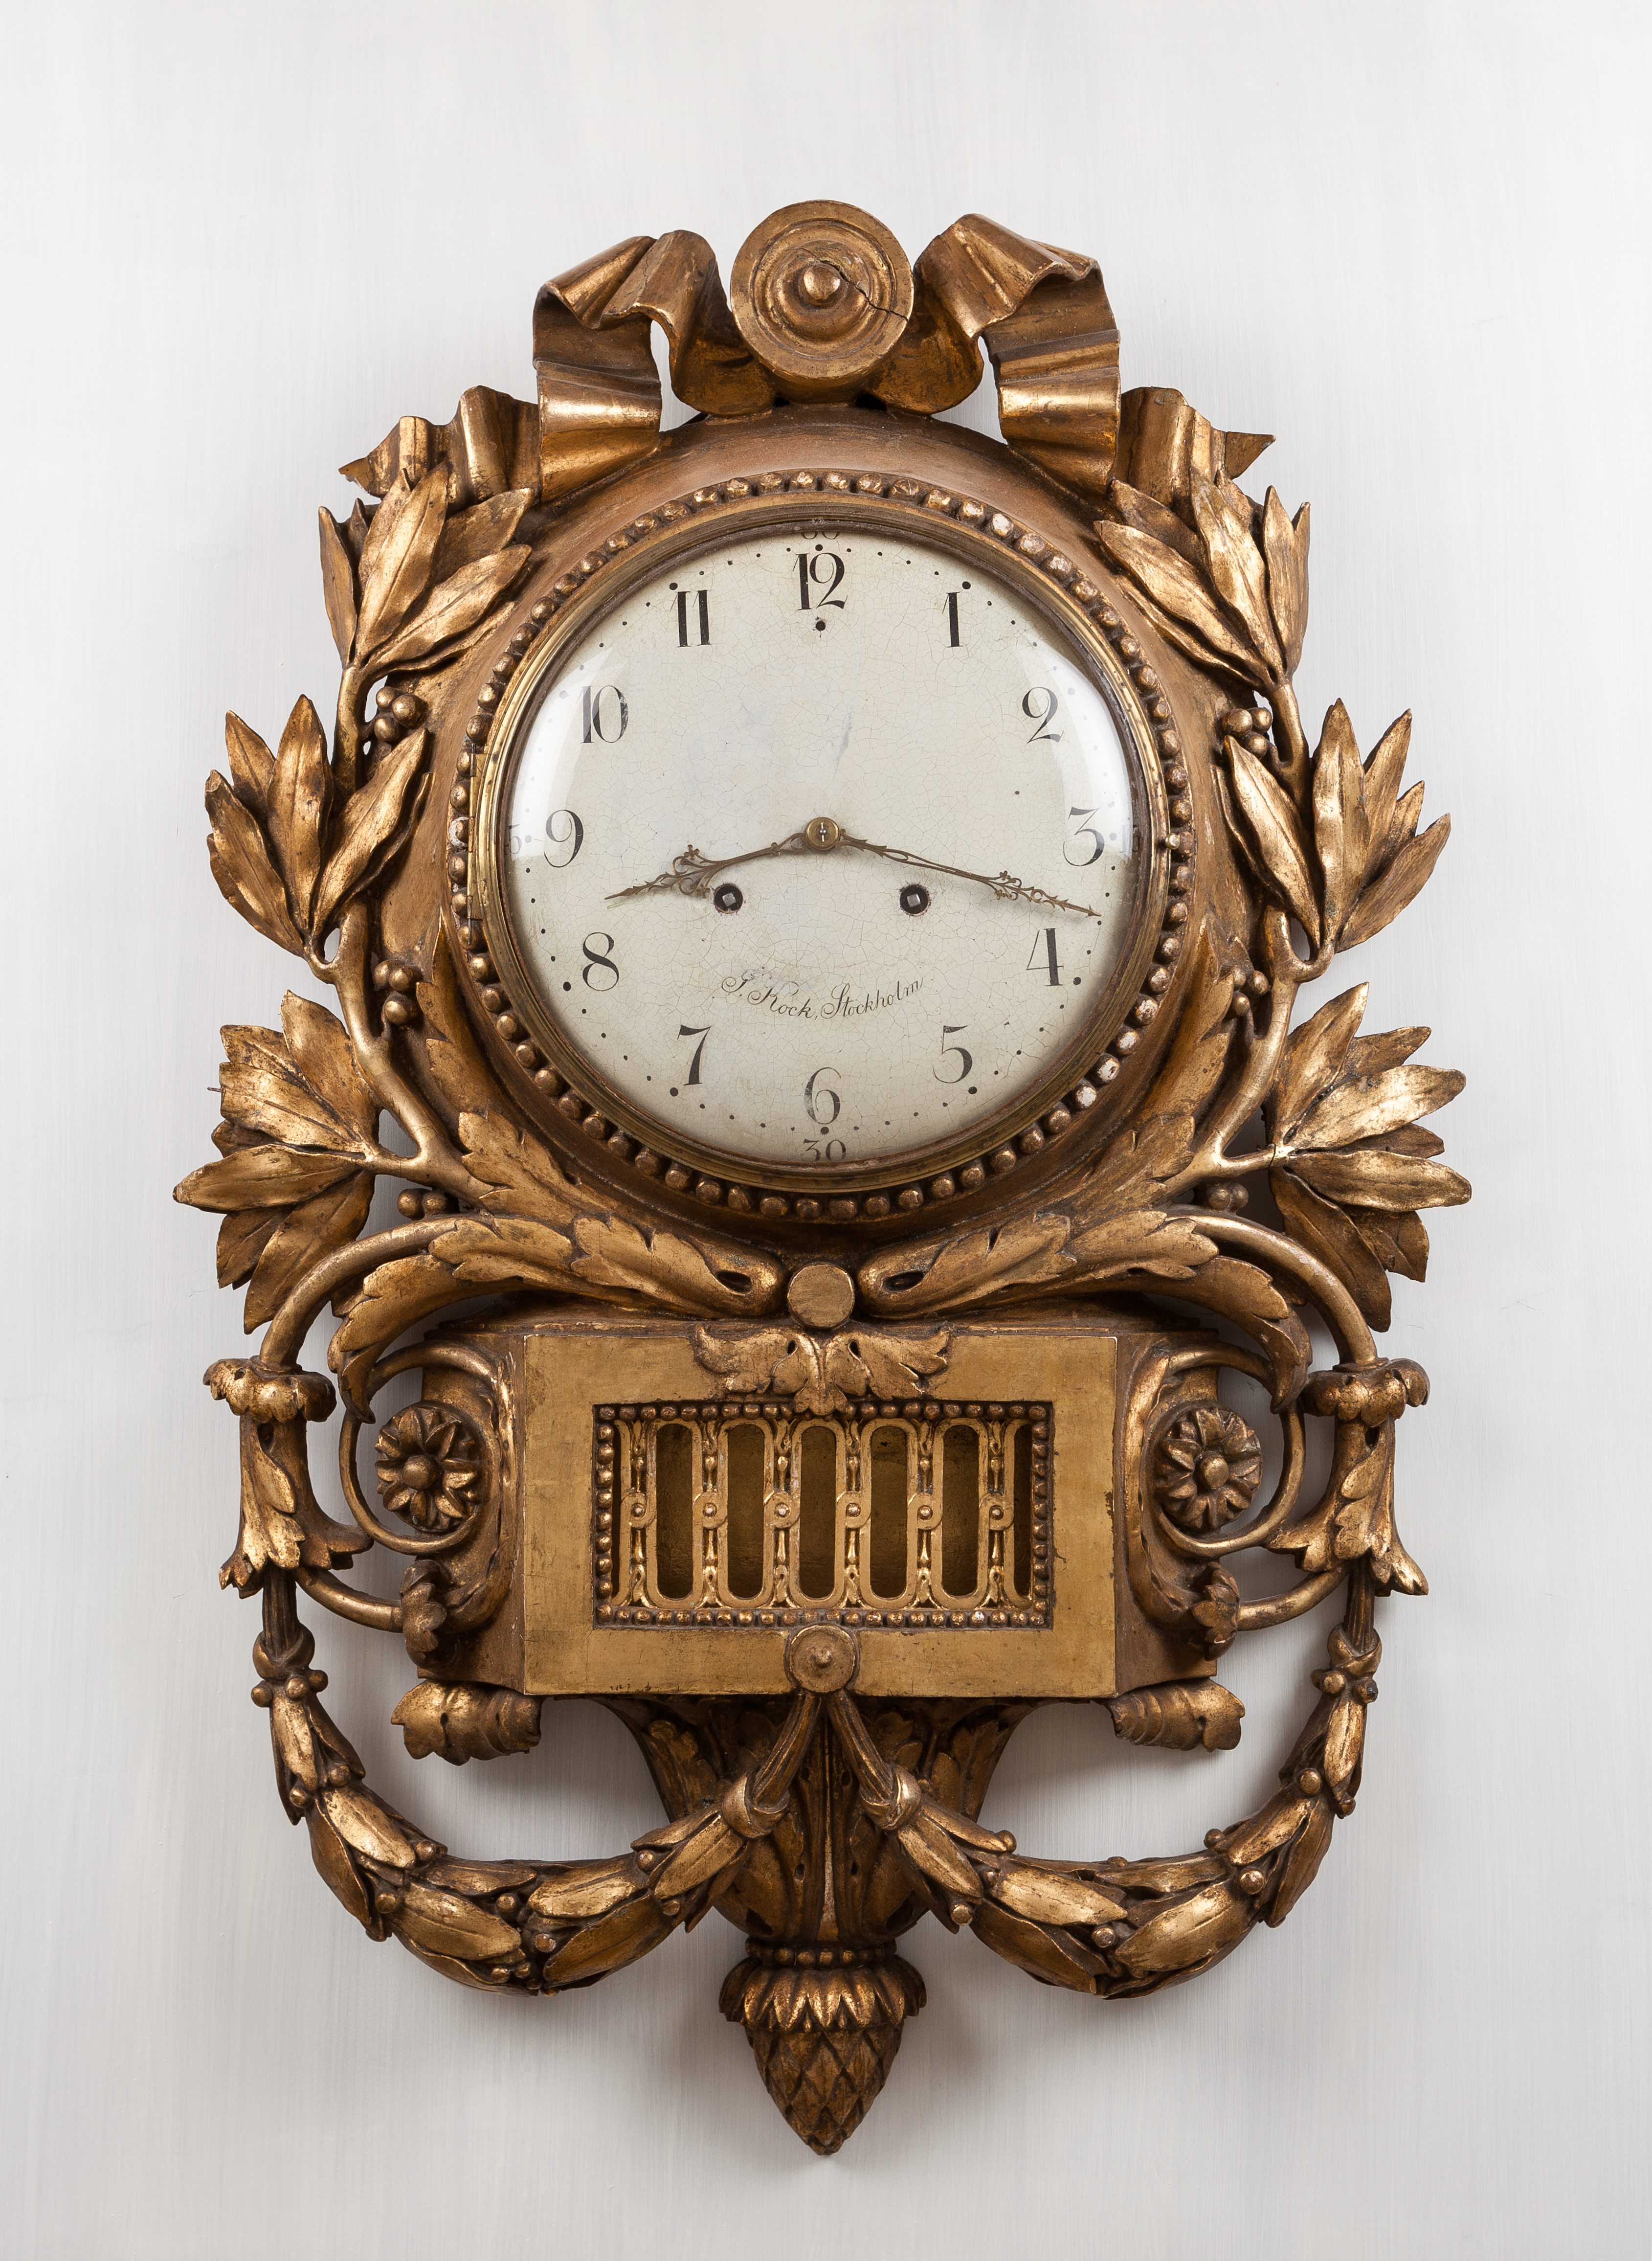 File Pendulum clock by Jacob Kock  antique furniture photography  IMG 0931  edit. File Pendulum clock by Jacob Kock  antique furniture photography